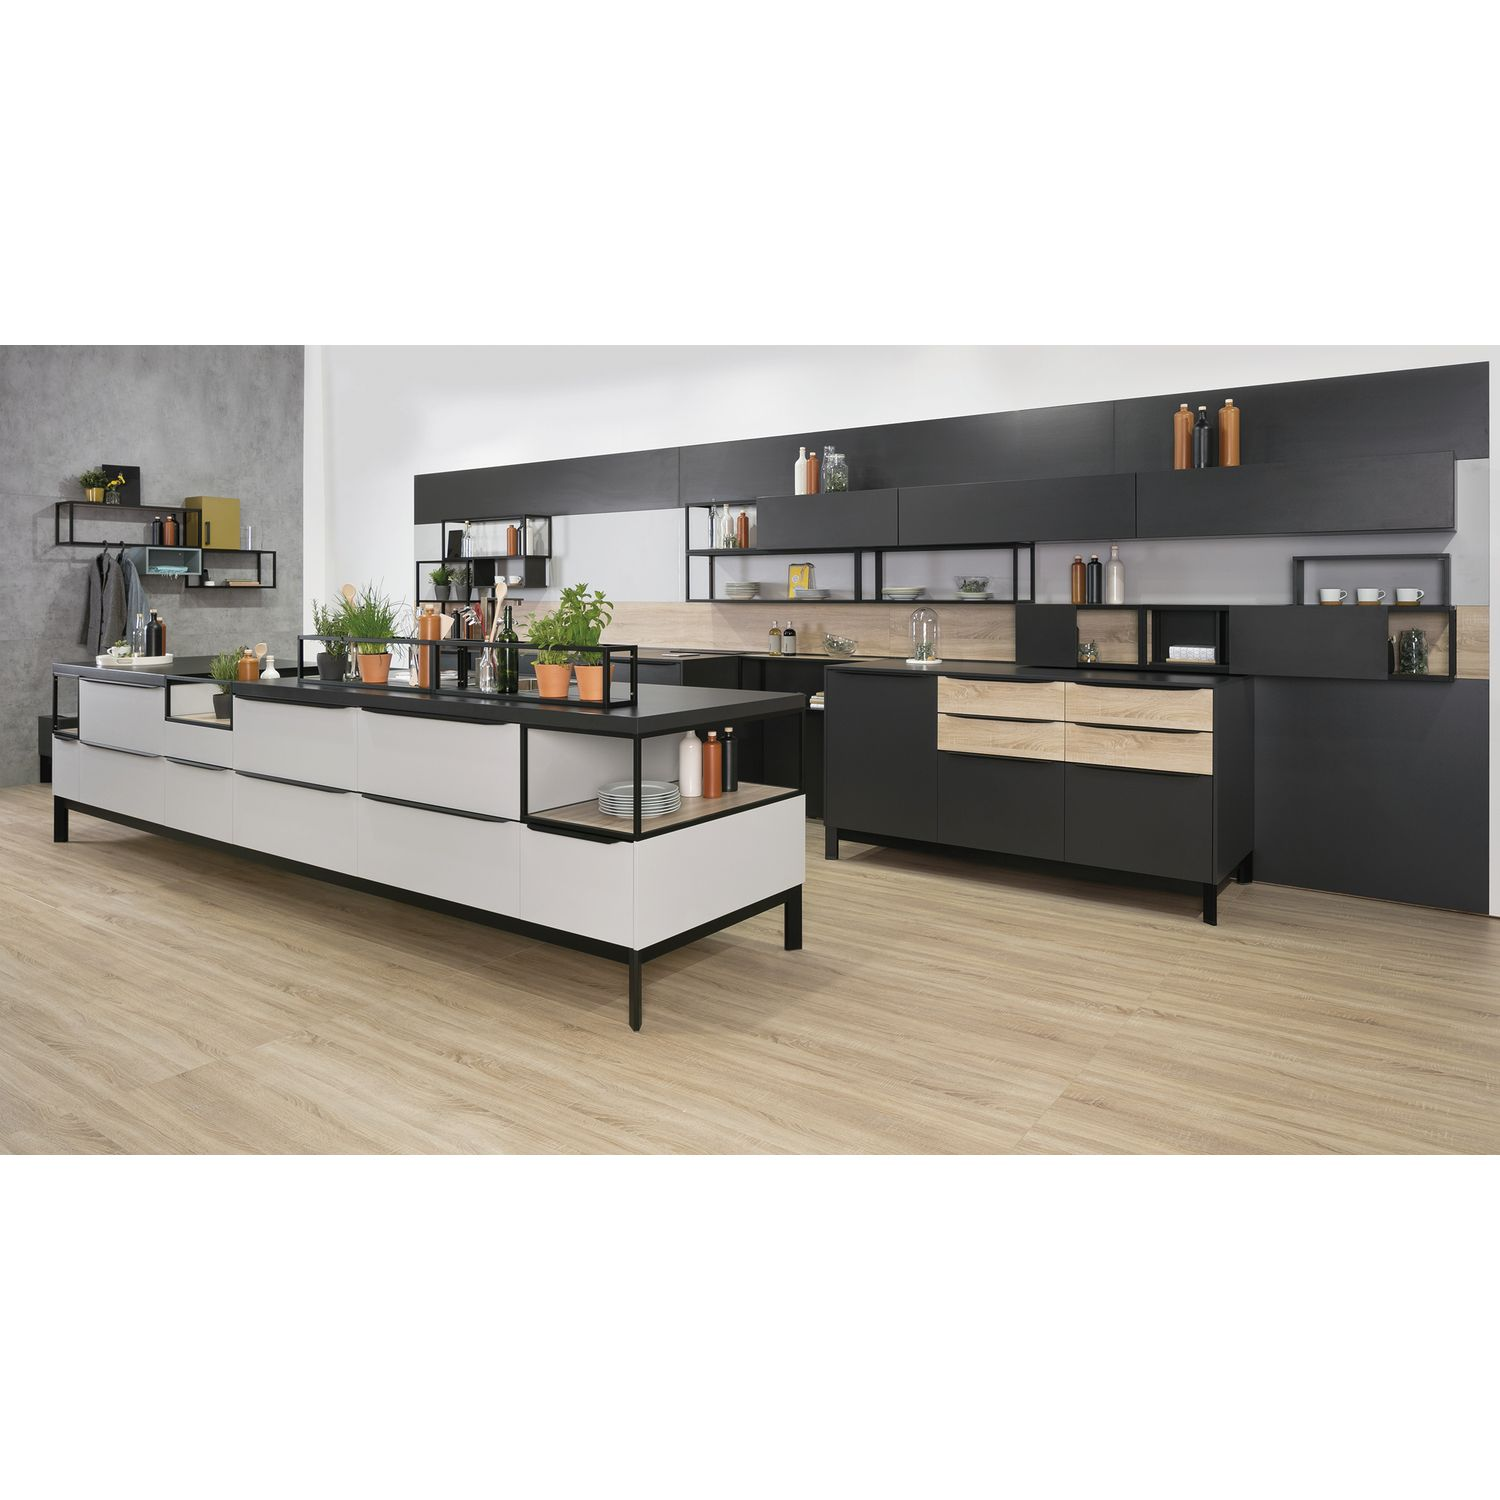 regal smartcube breite 900 h he 350 tiefe 250 mm alu spanplatten schwarz. Black Bedroom Furniture Sets. Home Design Ideas